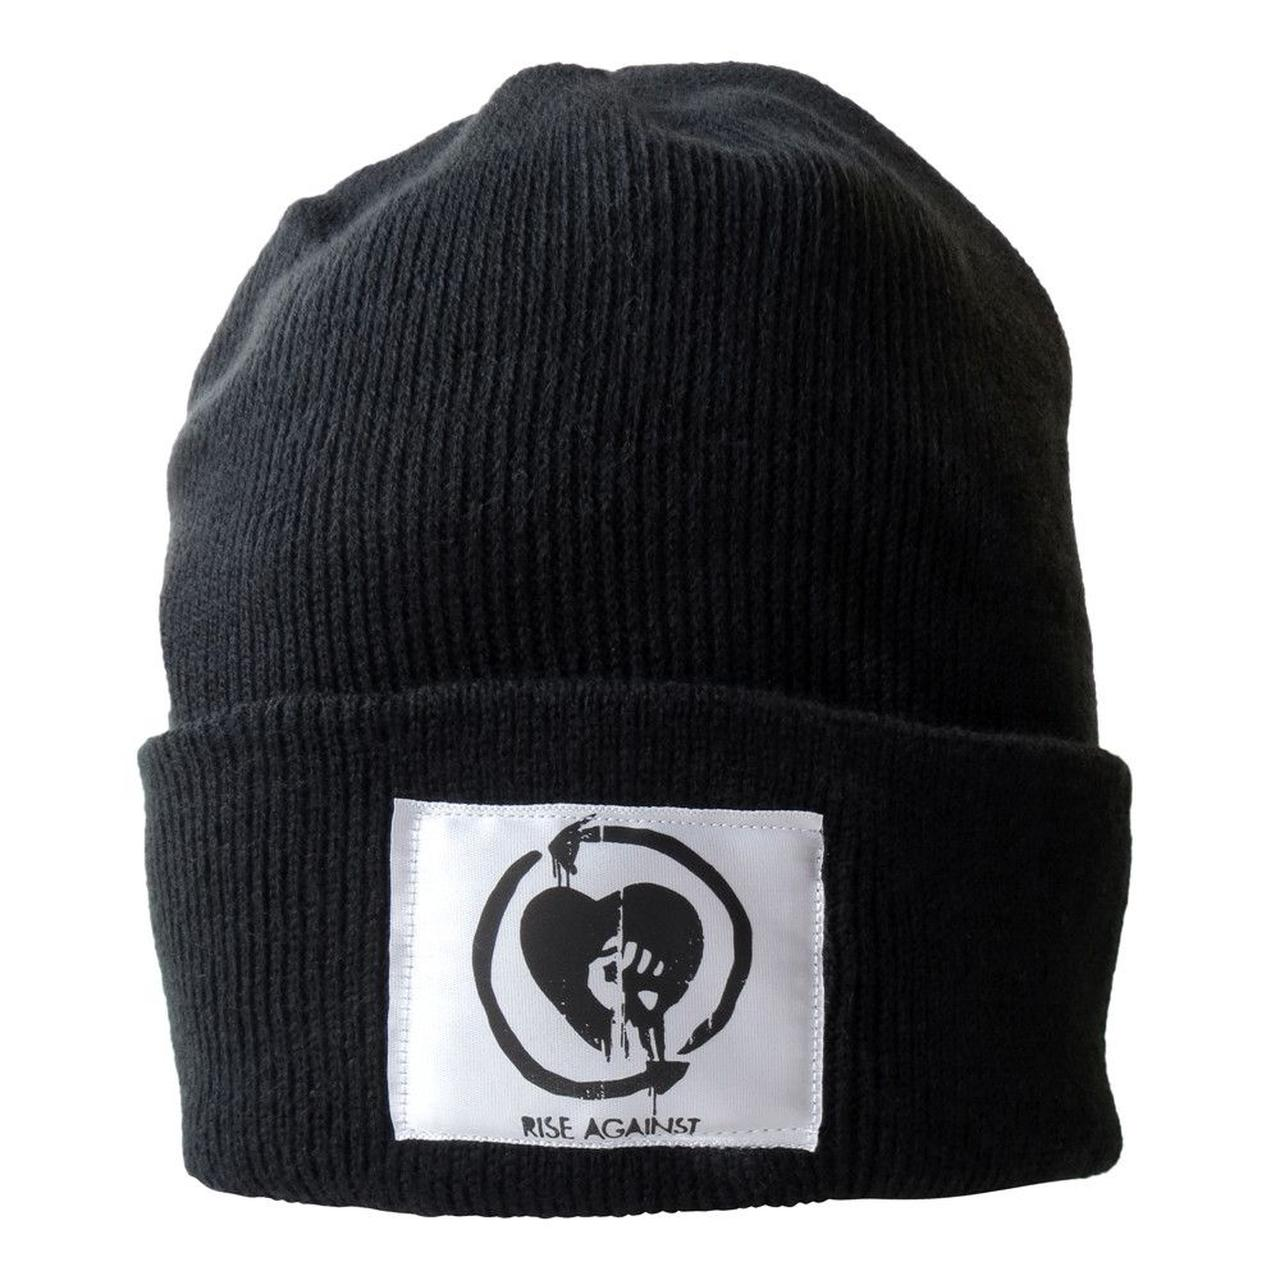 Rise Against. Patched Heartfist Beanie 2e681296b86